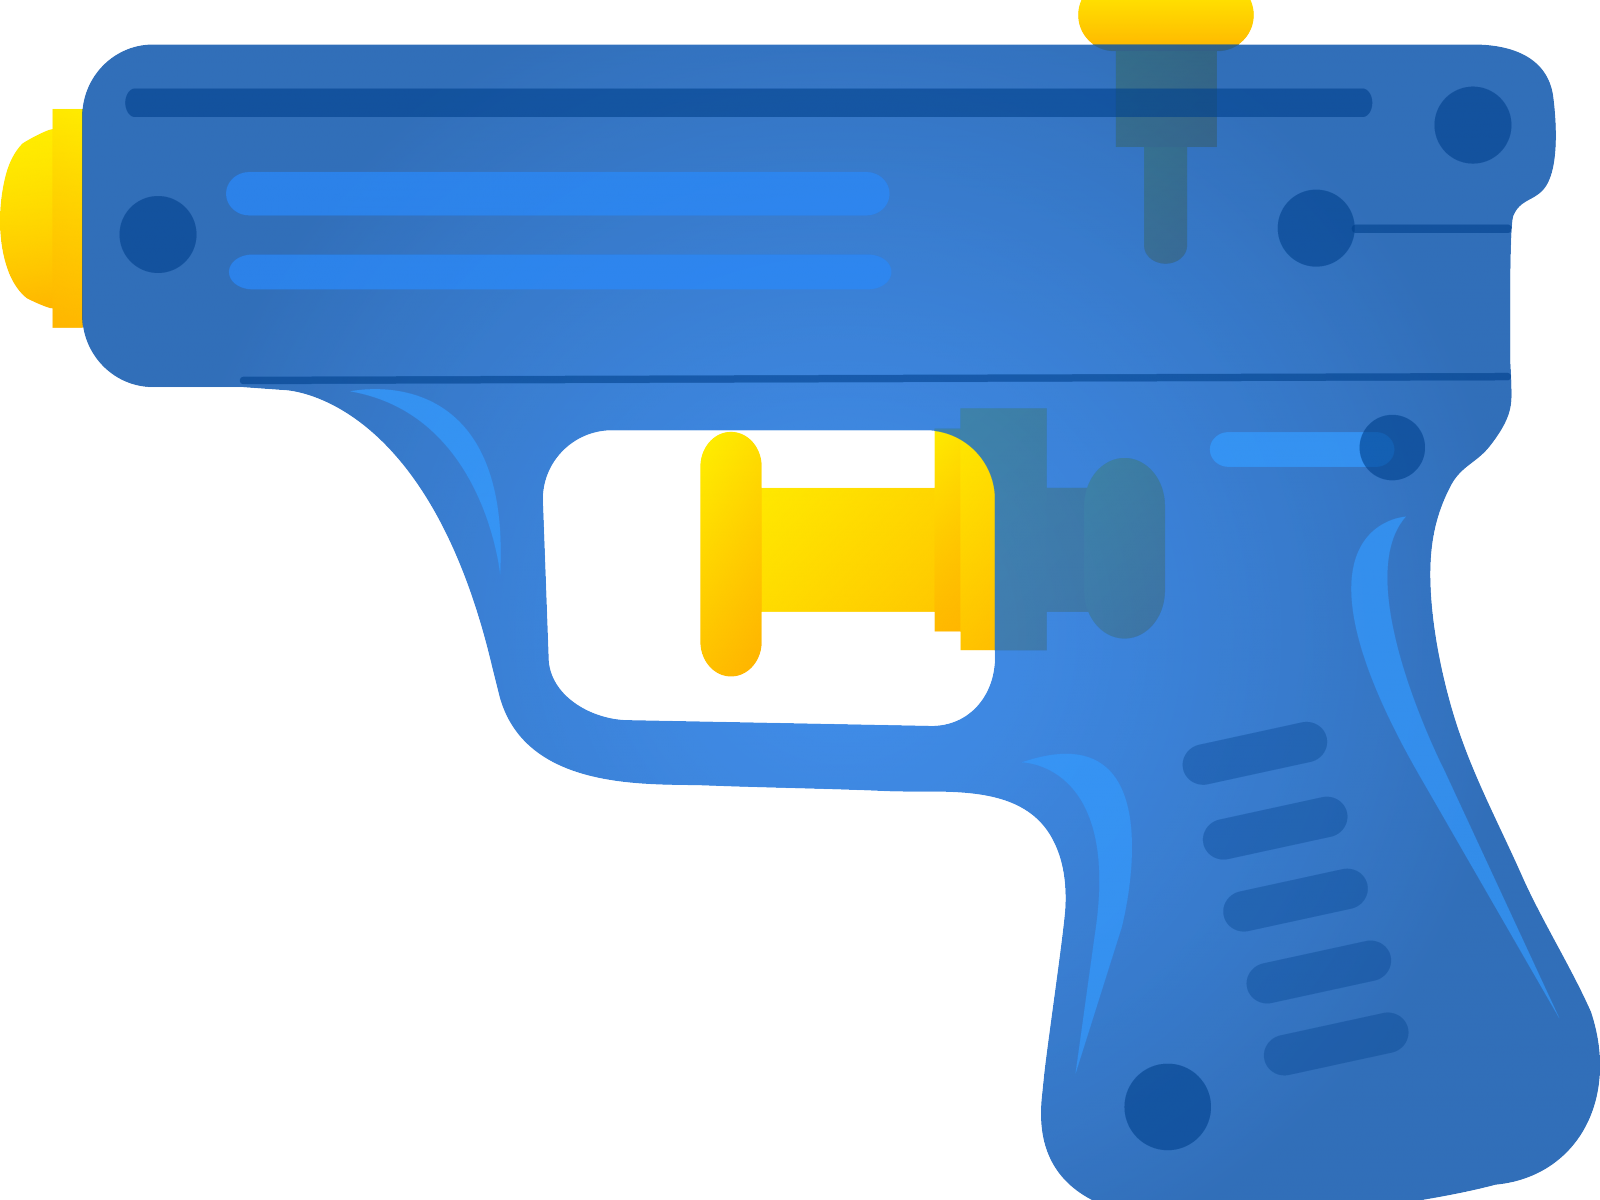 Nerf at getdrawings com. Clipart gun toy